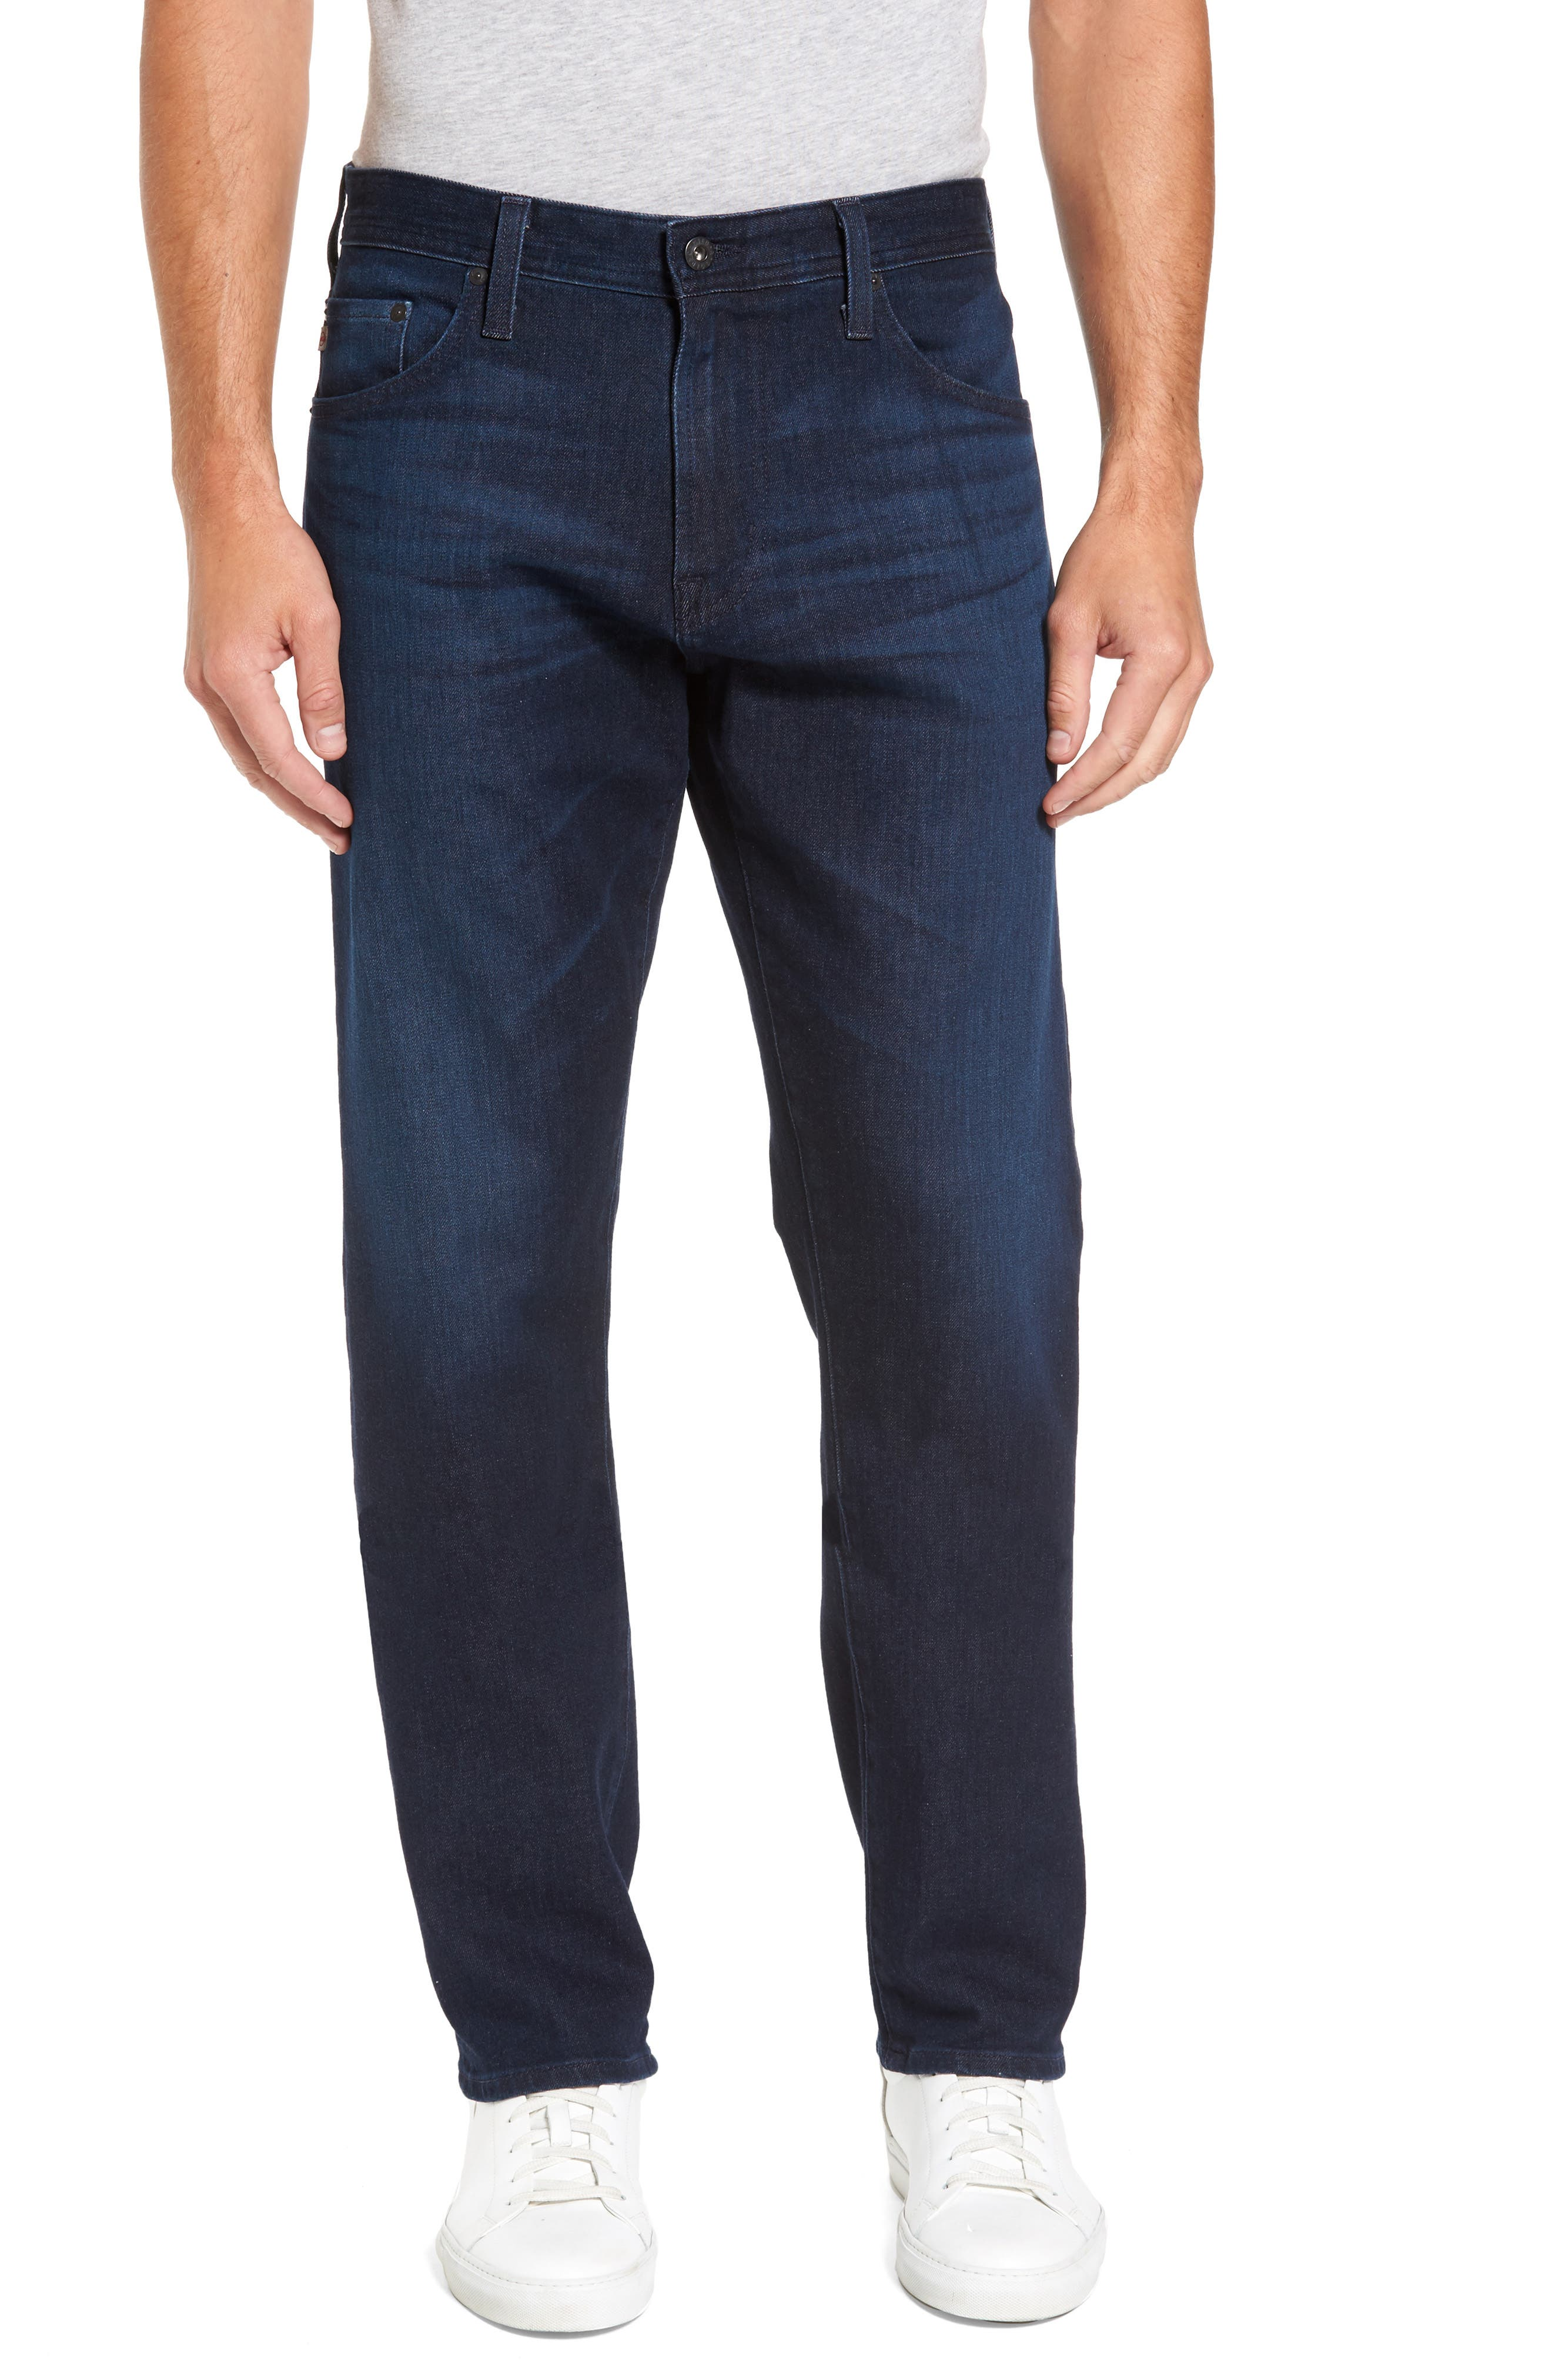 Ives Straight Leg Jeans,                             Main thumbnail 1, color,                             482